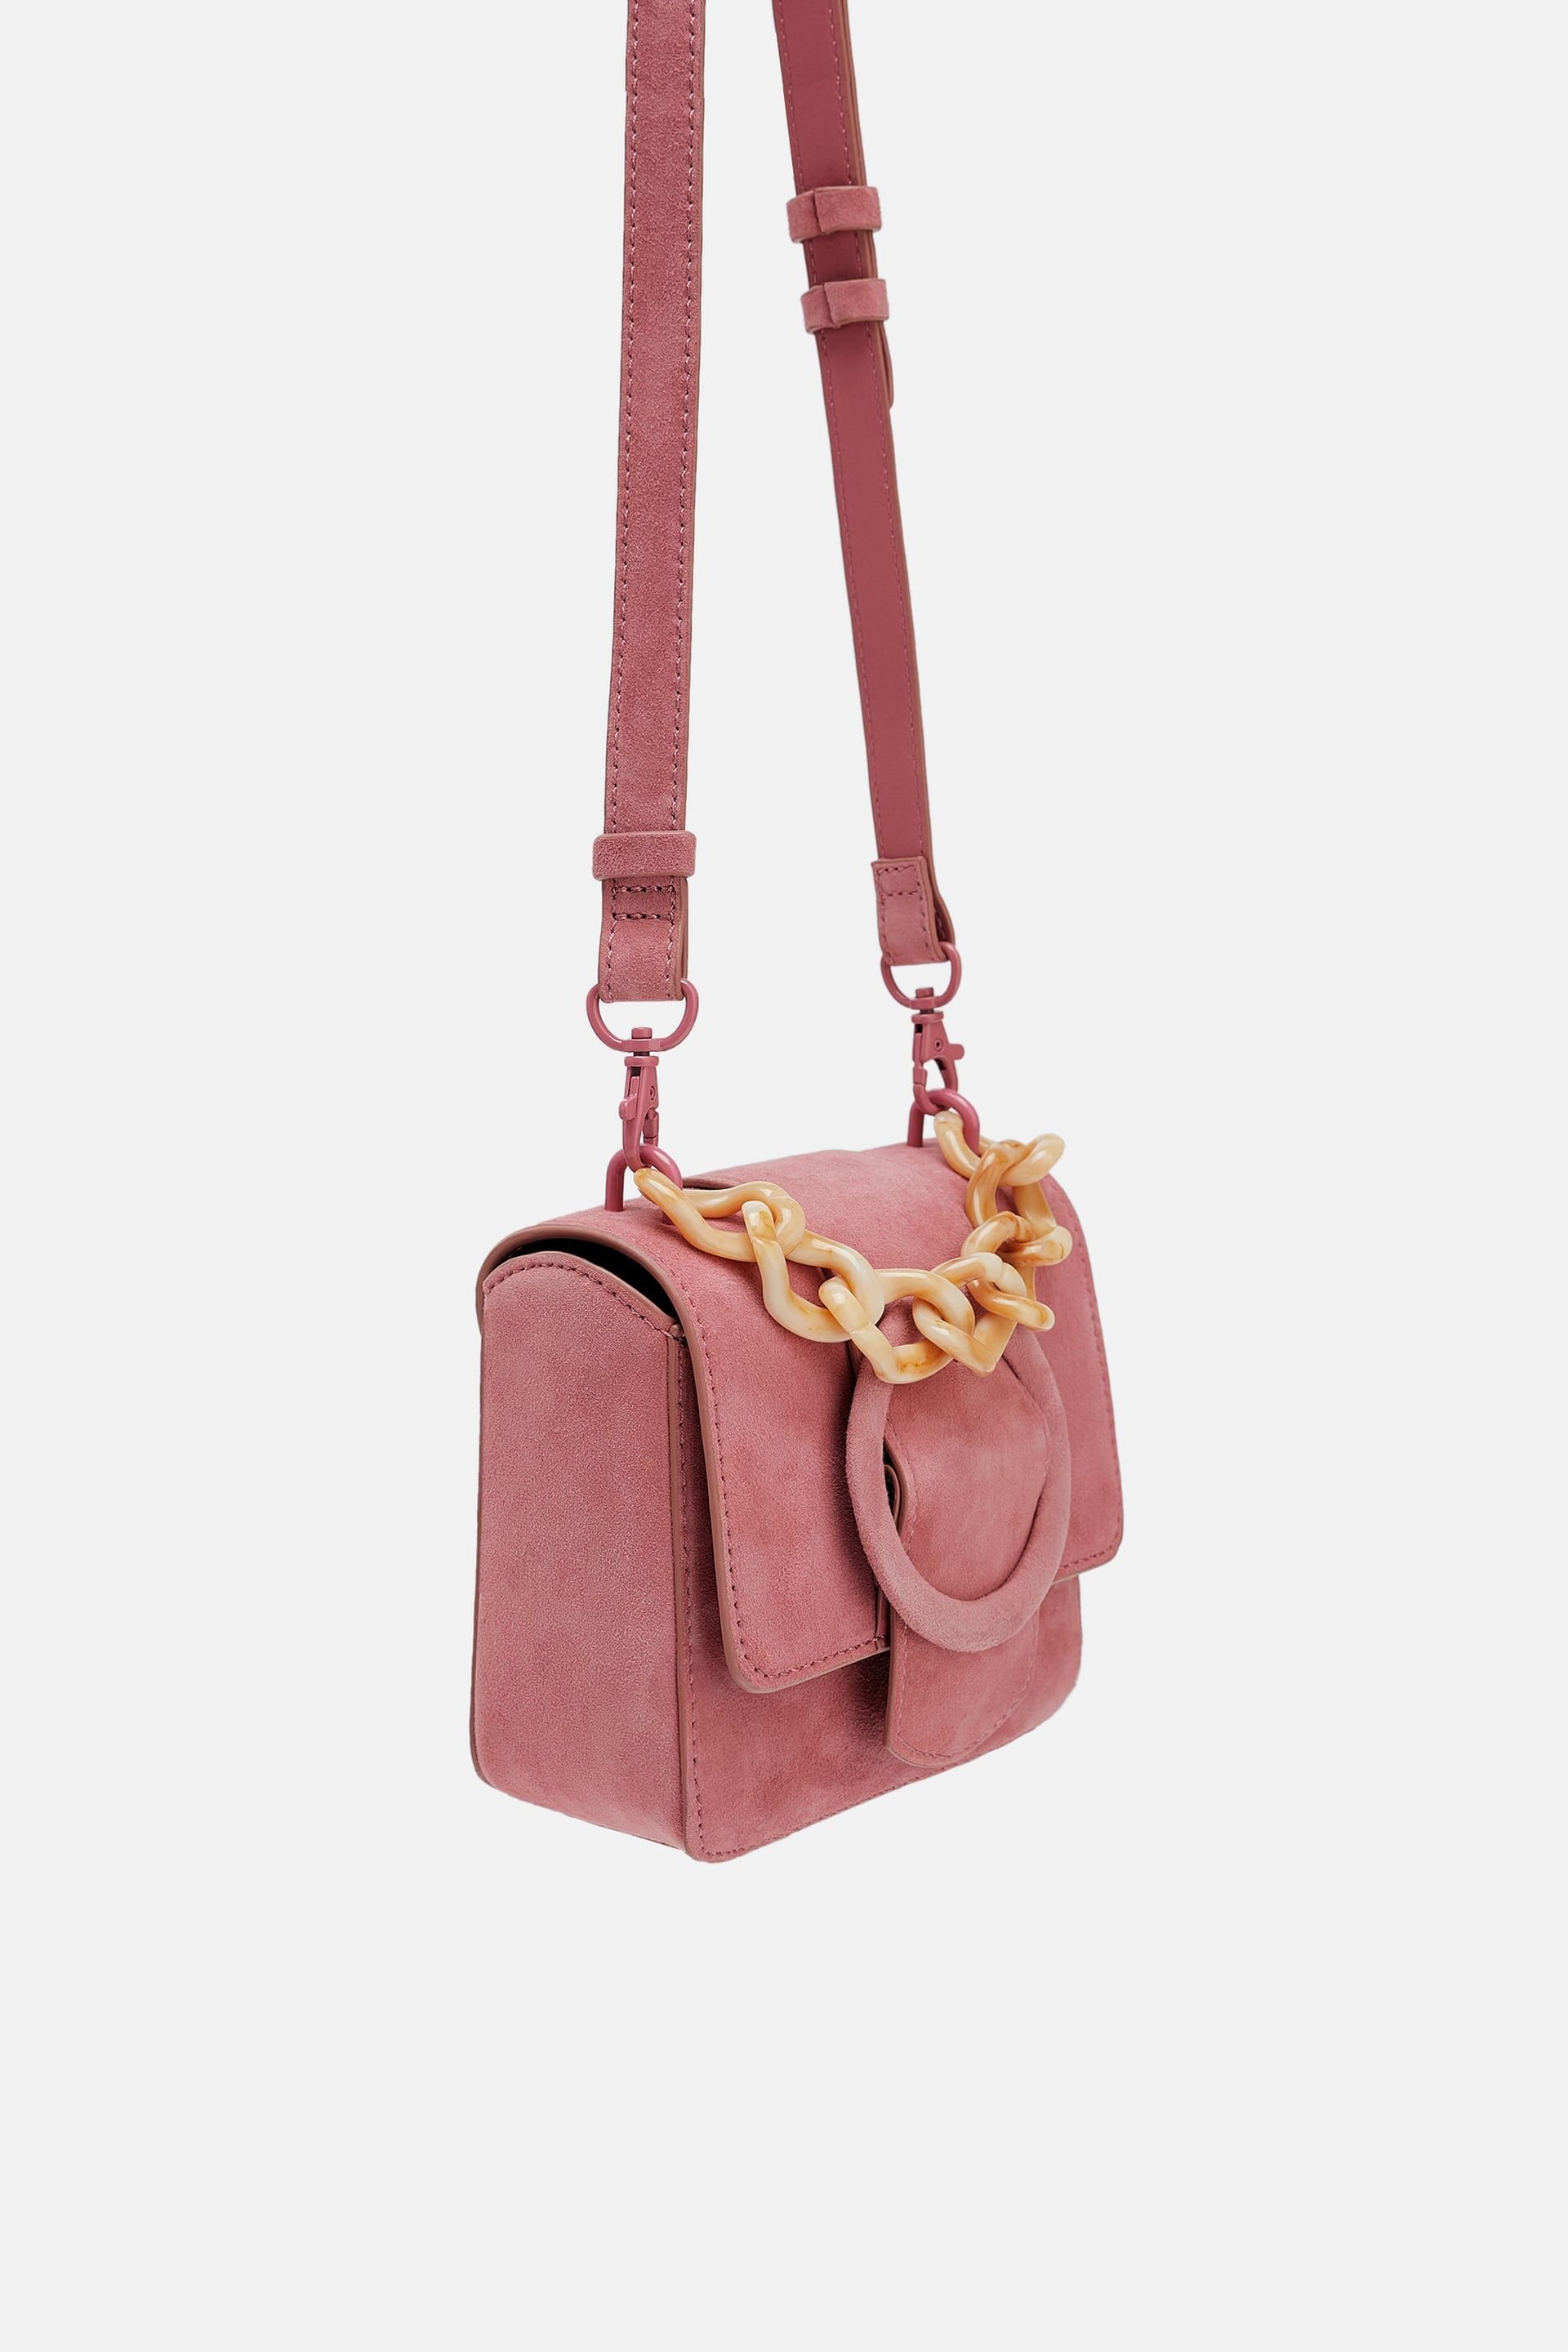 e05be04c81 Mini leather crossbody bag with tortoiseshell strap in 2019 | THE ...